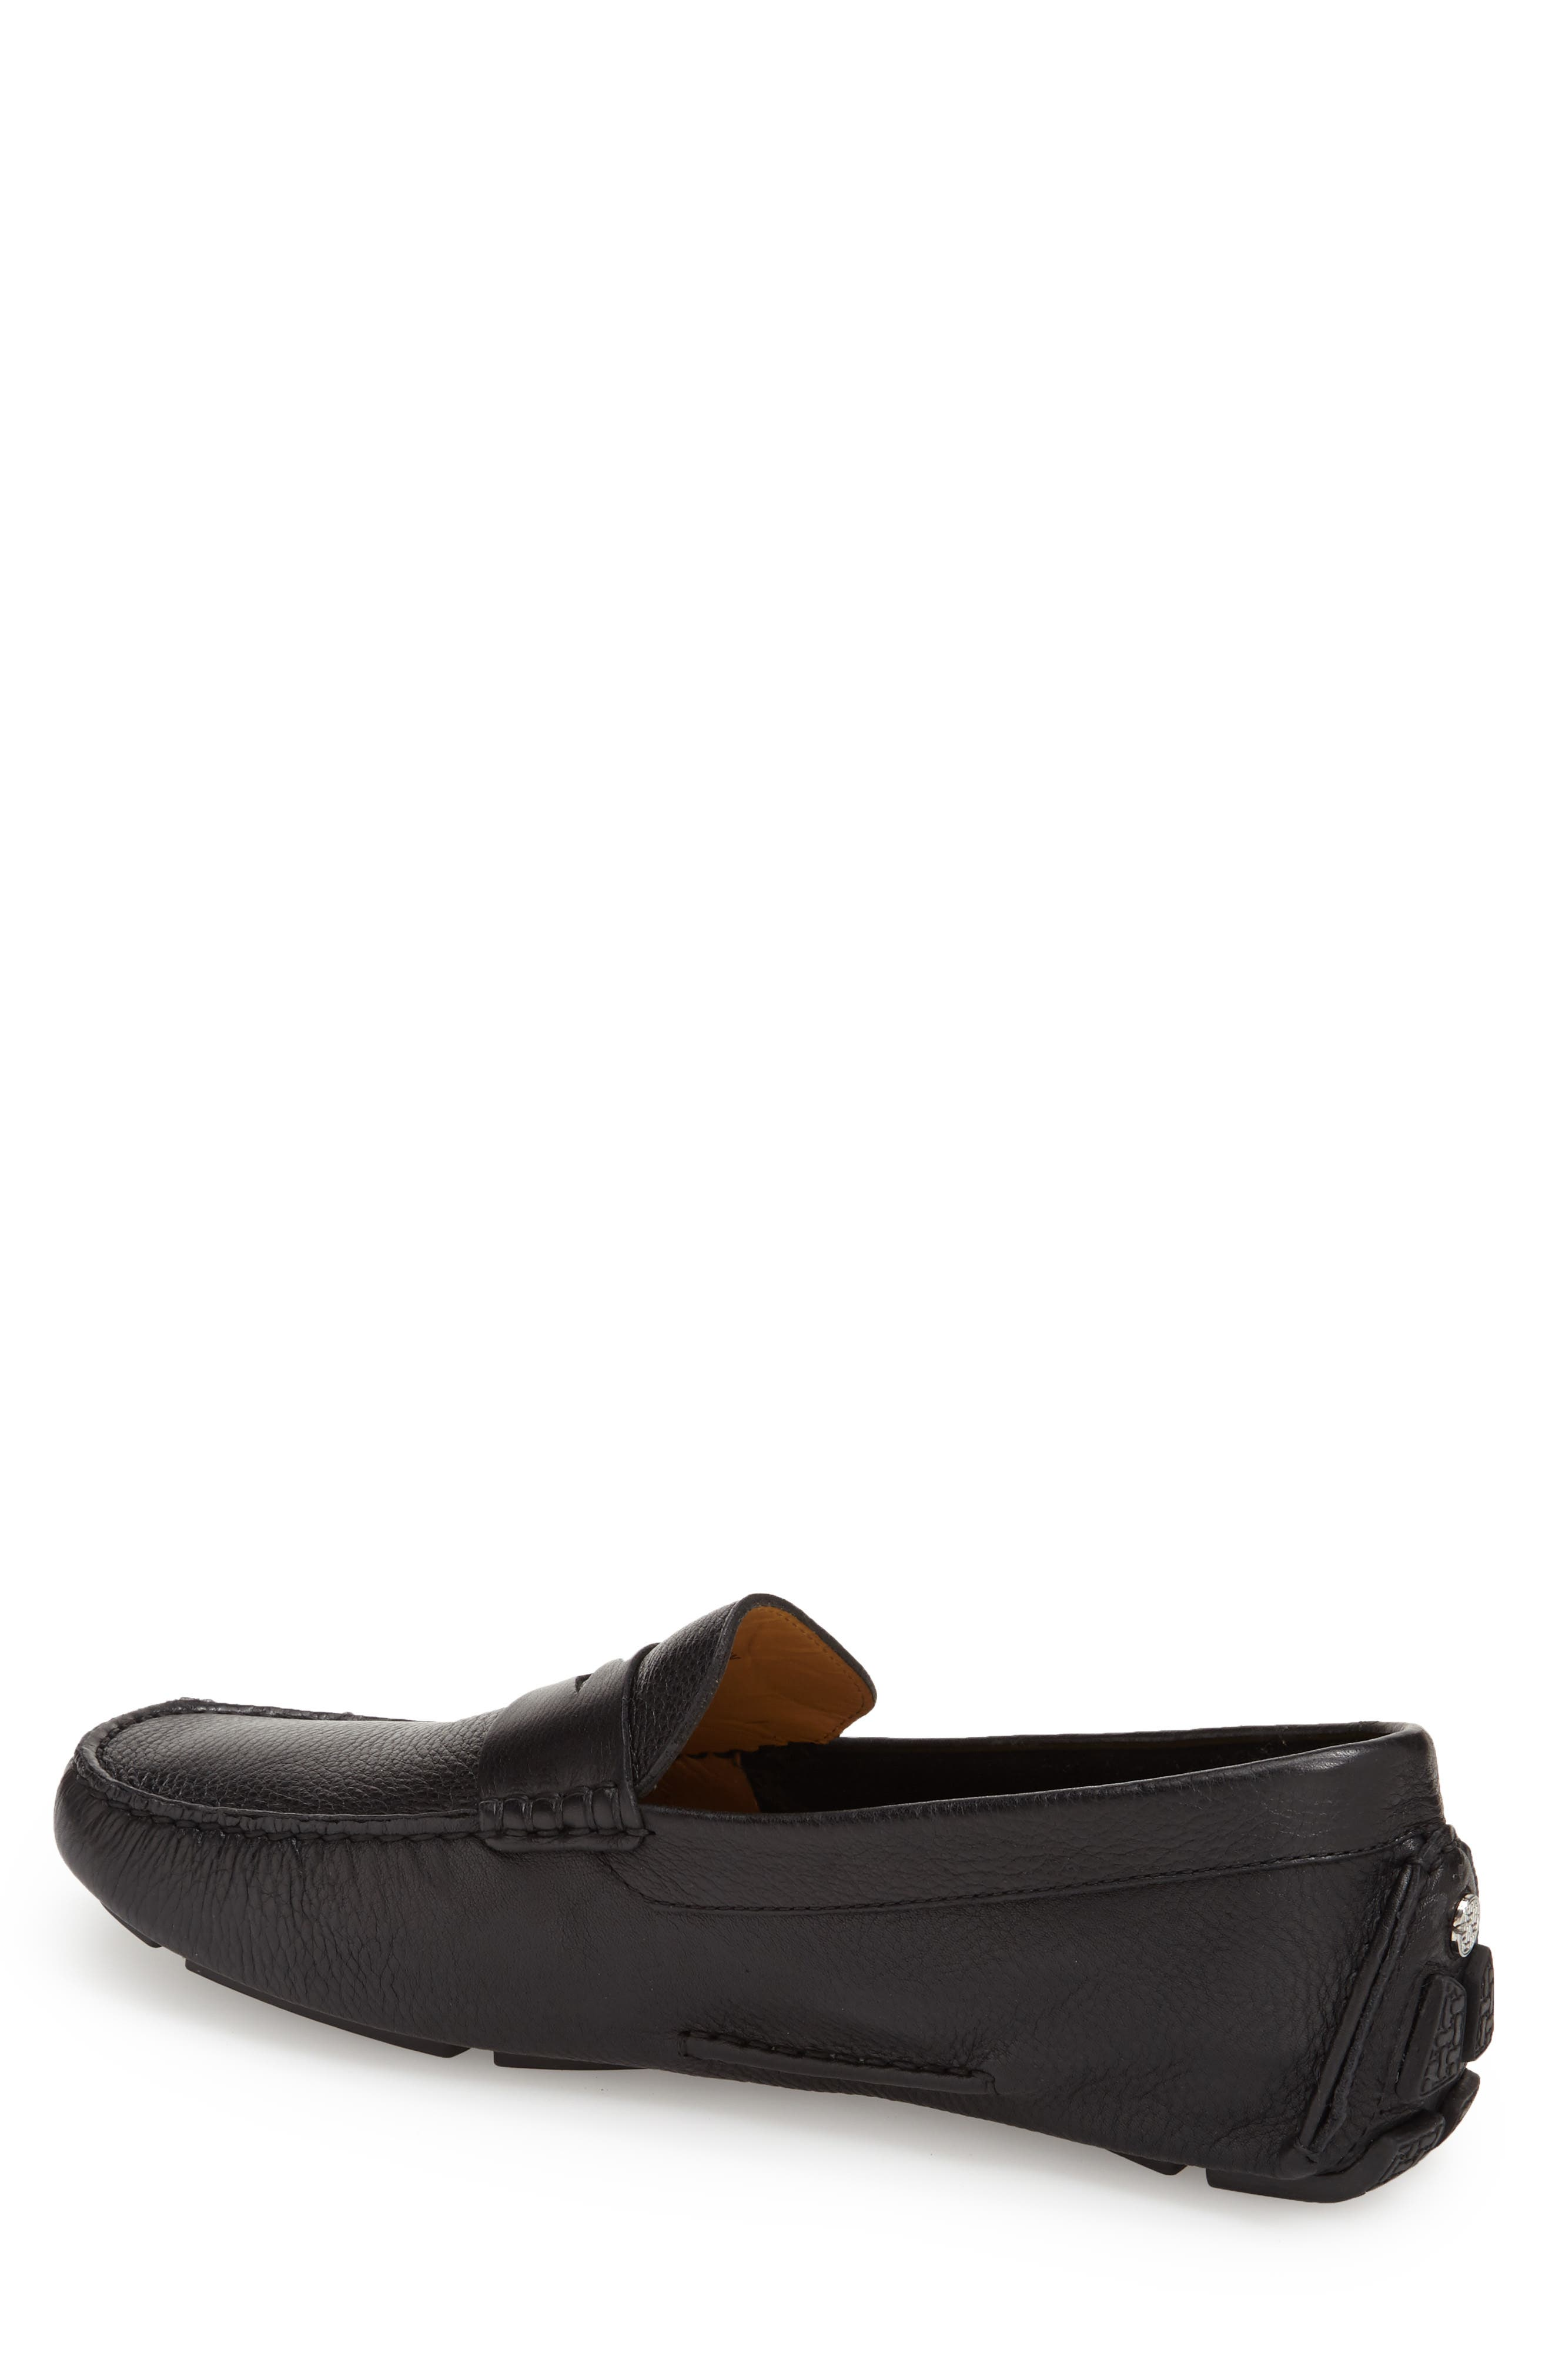 'Howland' Penny Loafer,                             Alternate thumbnail 11, color,                             BLACK TUMBLED